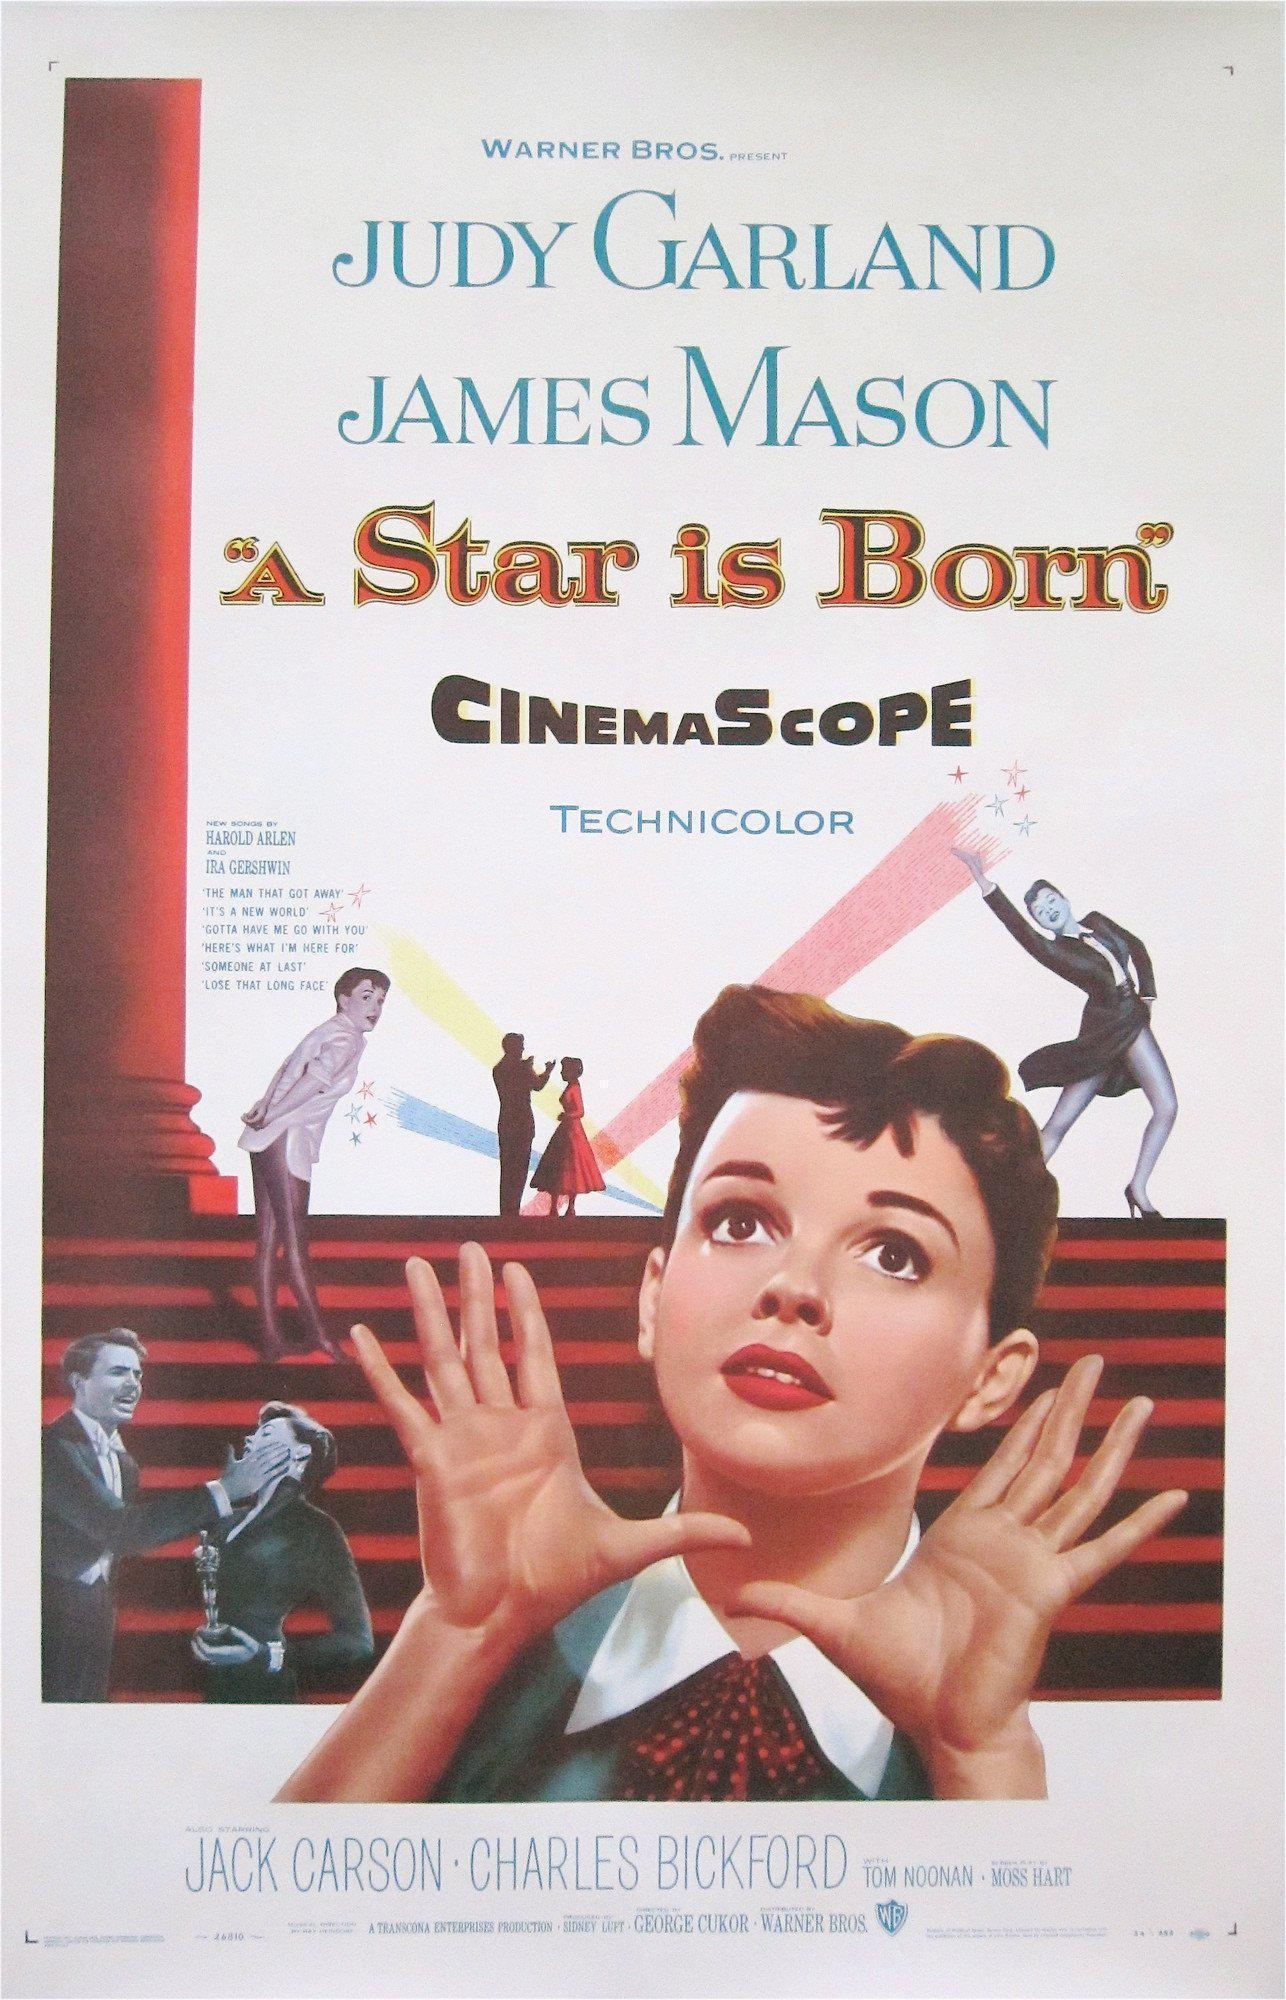 A Star is Born 1 Sheet (27x41) Original Vintage Movie Poster